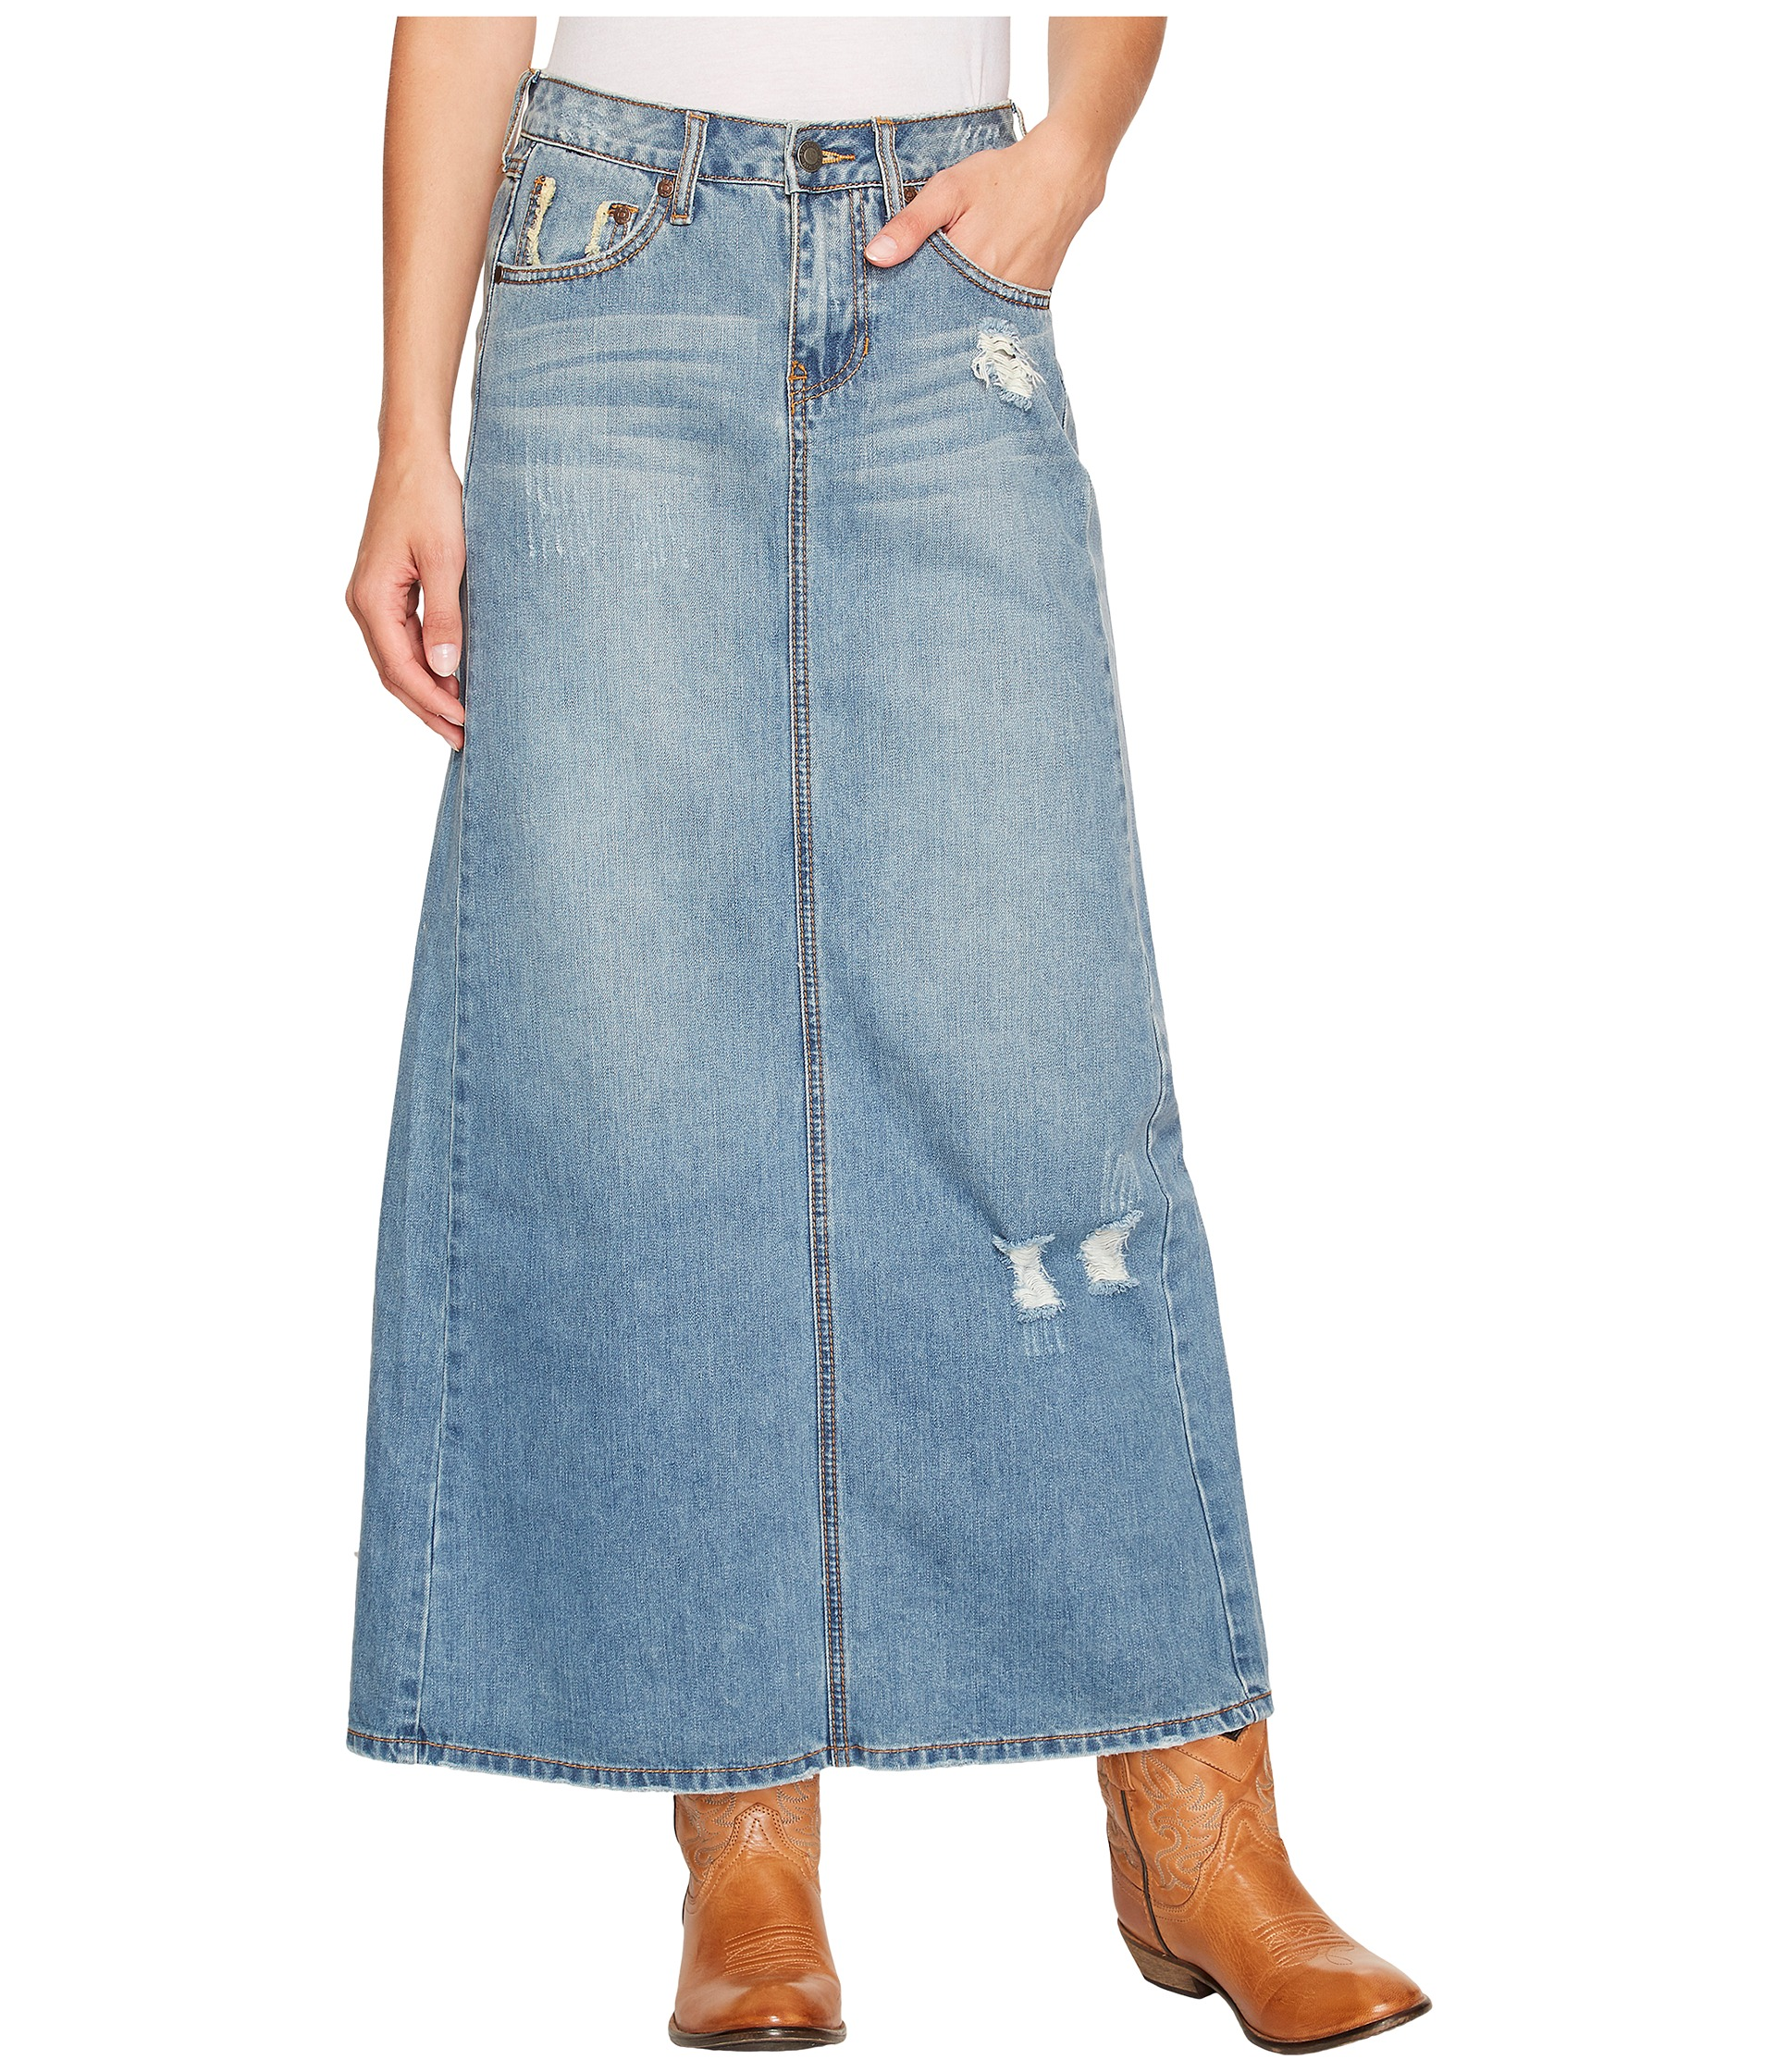 Denim Skirts, Clothing | Shipped Free at Zappos